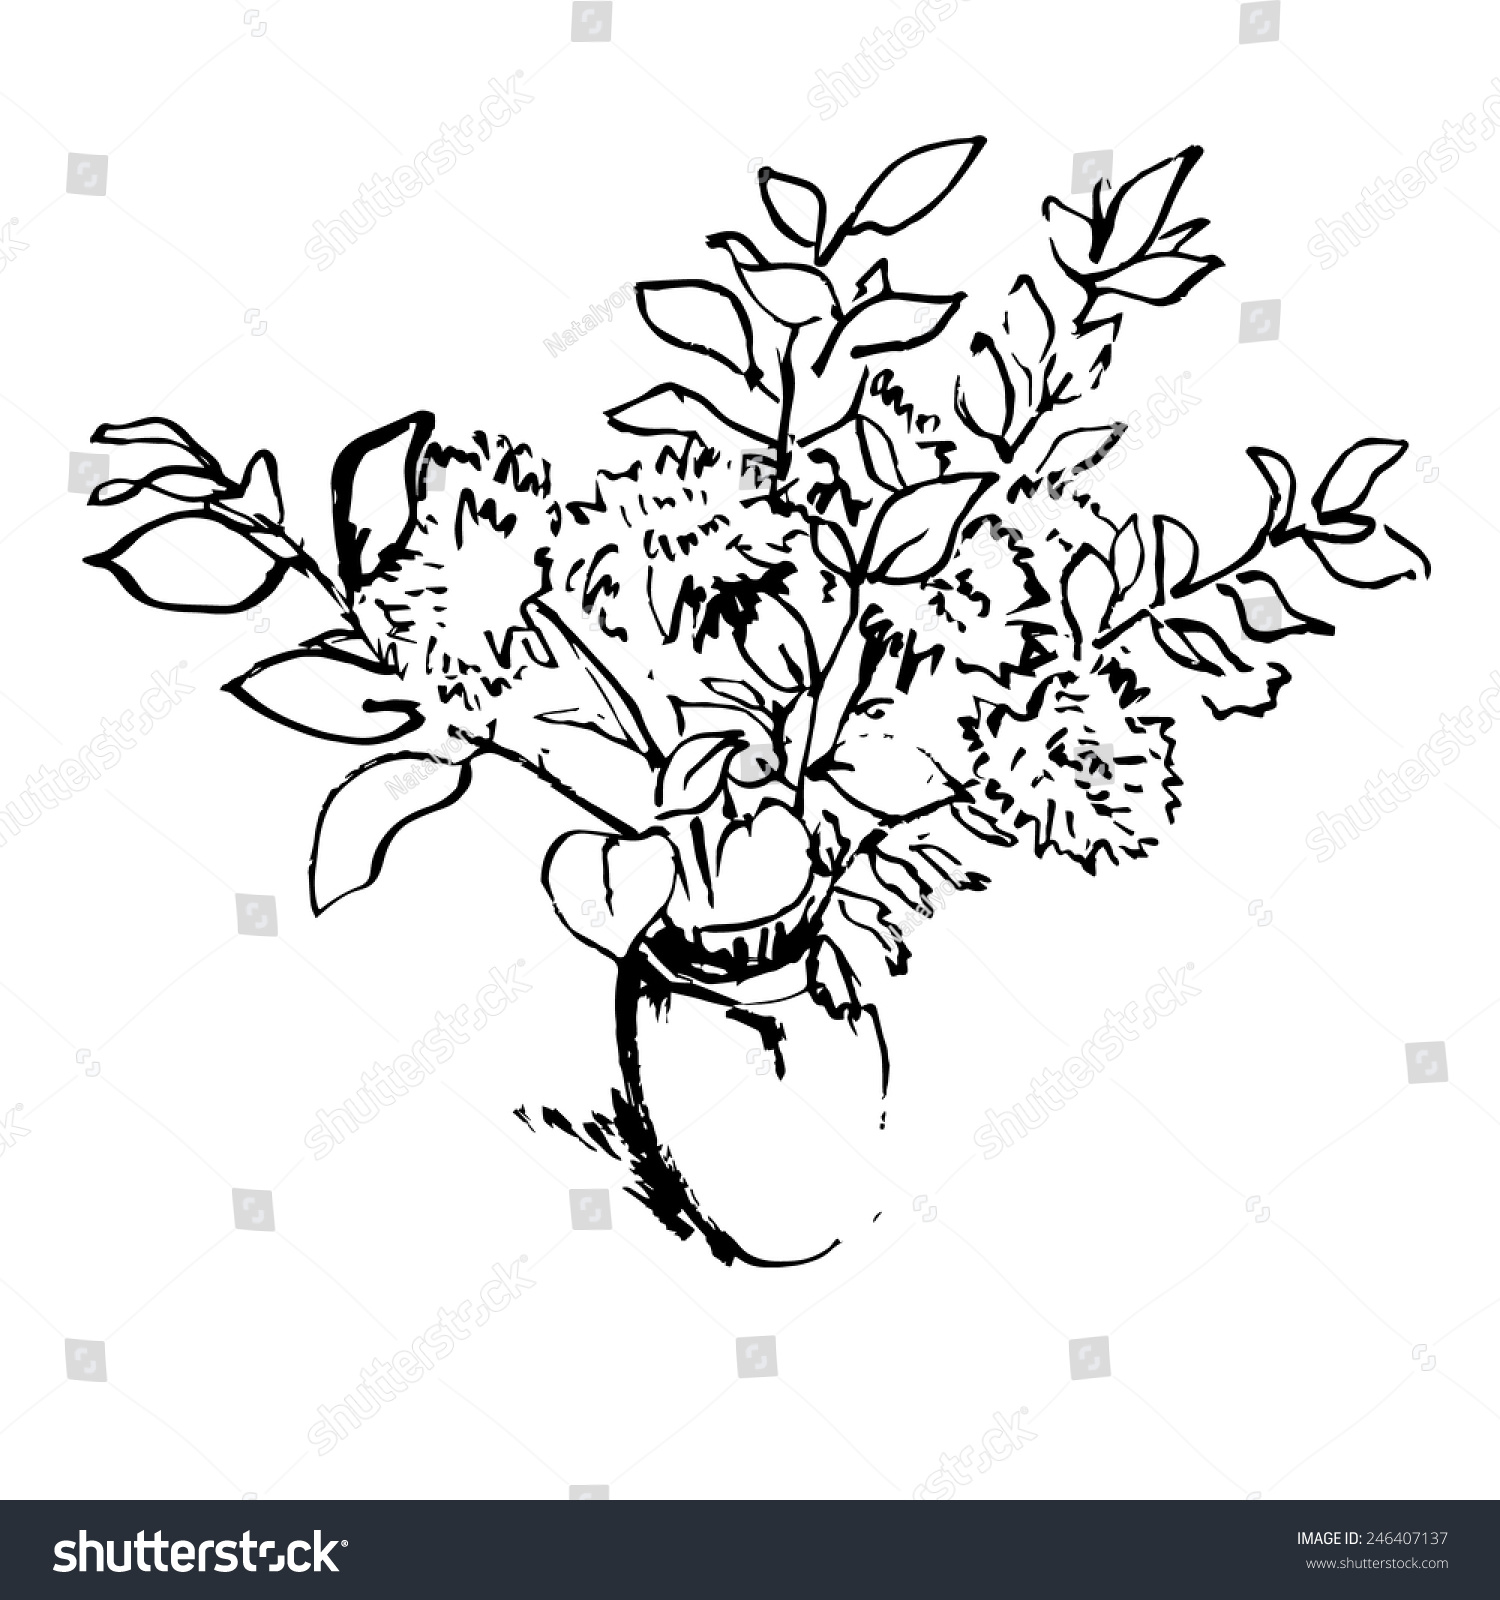 Black And White Aster Flowers Bouquet In A Vase Hand Drawn Pen And